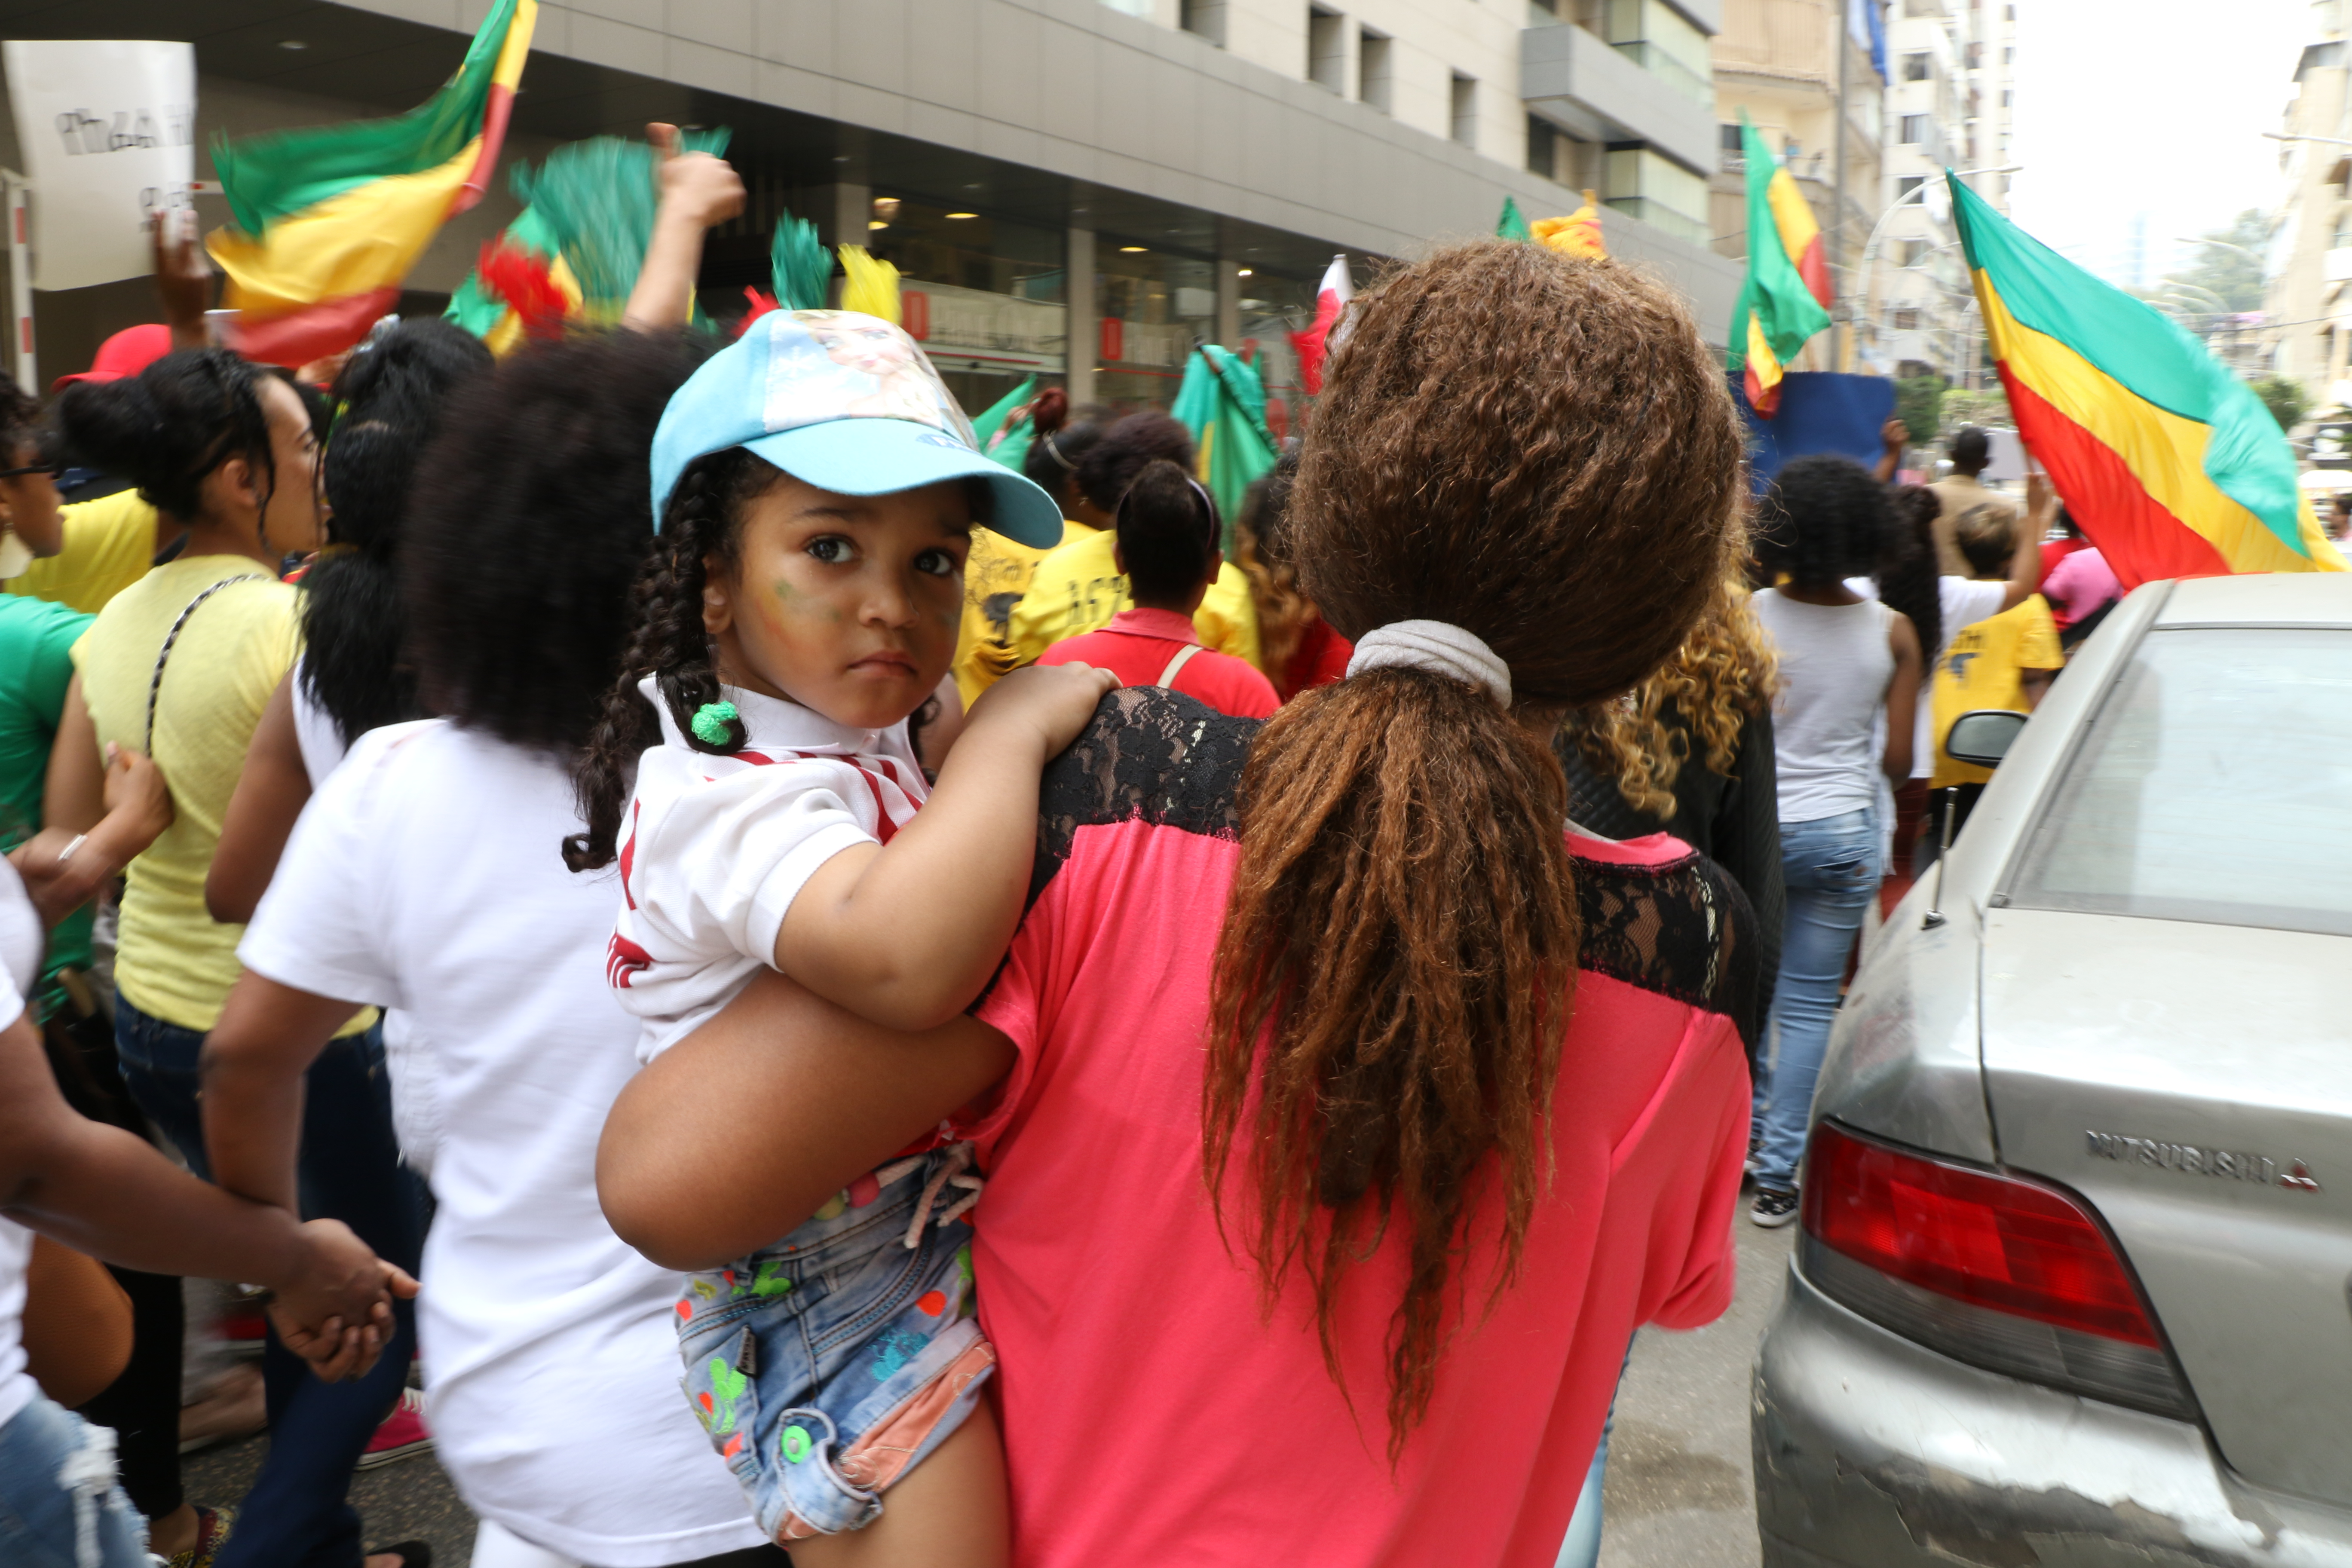 """lebanon migrant workers The migrant workers' parade and festival, set for sunday in beirut, is seeking to """"change mentalities"""" about foreign workers in lebanon african migrant workers continue to be called fahmeh (charcoal) or abed (slave) on lebanon' streets."""